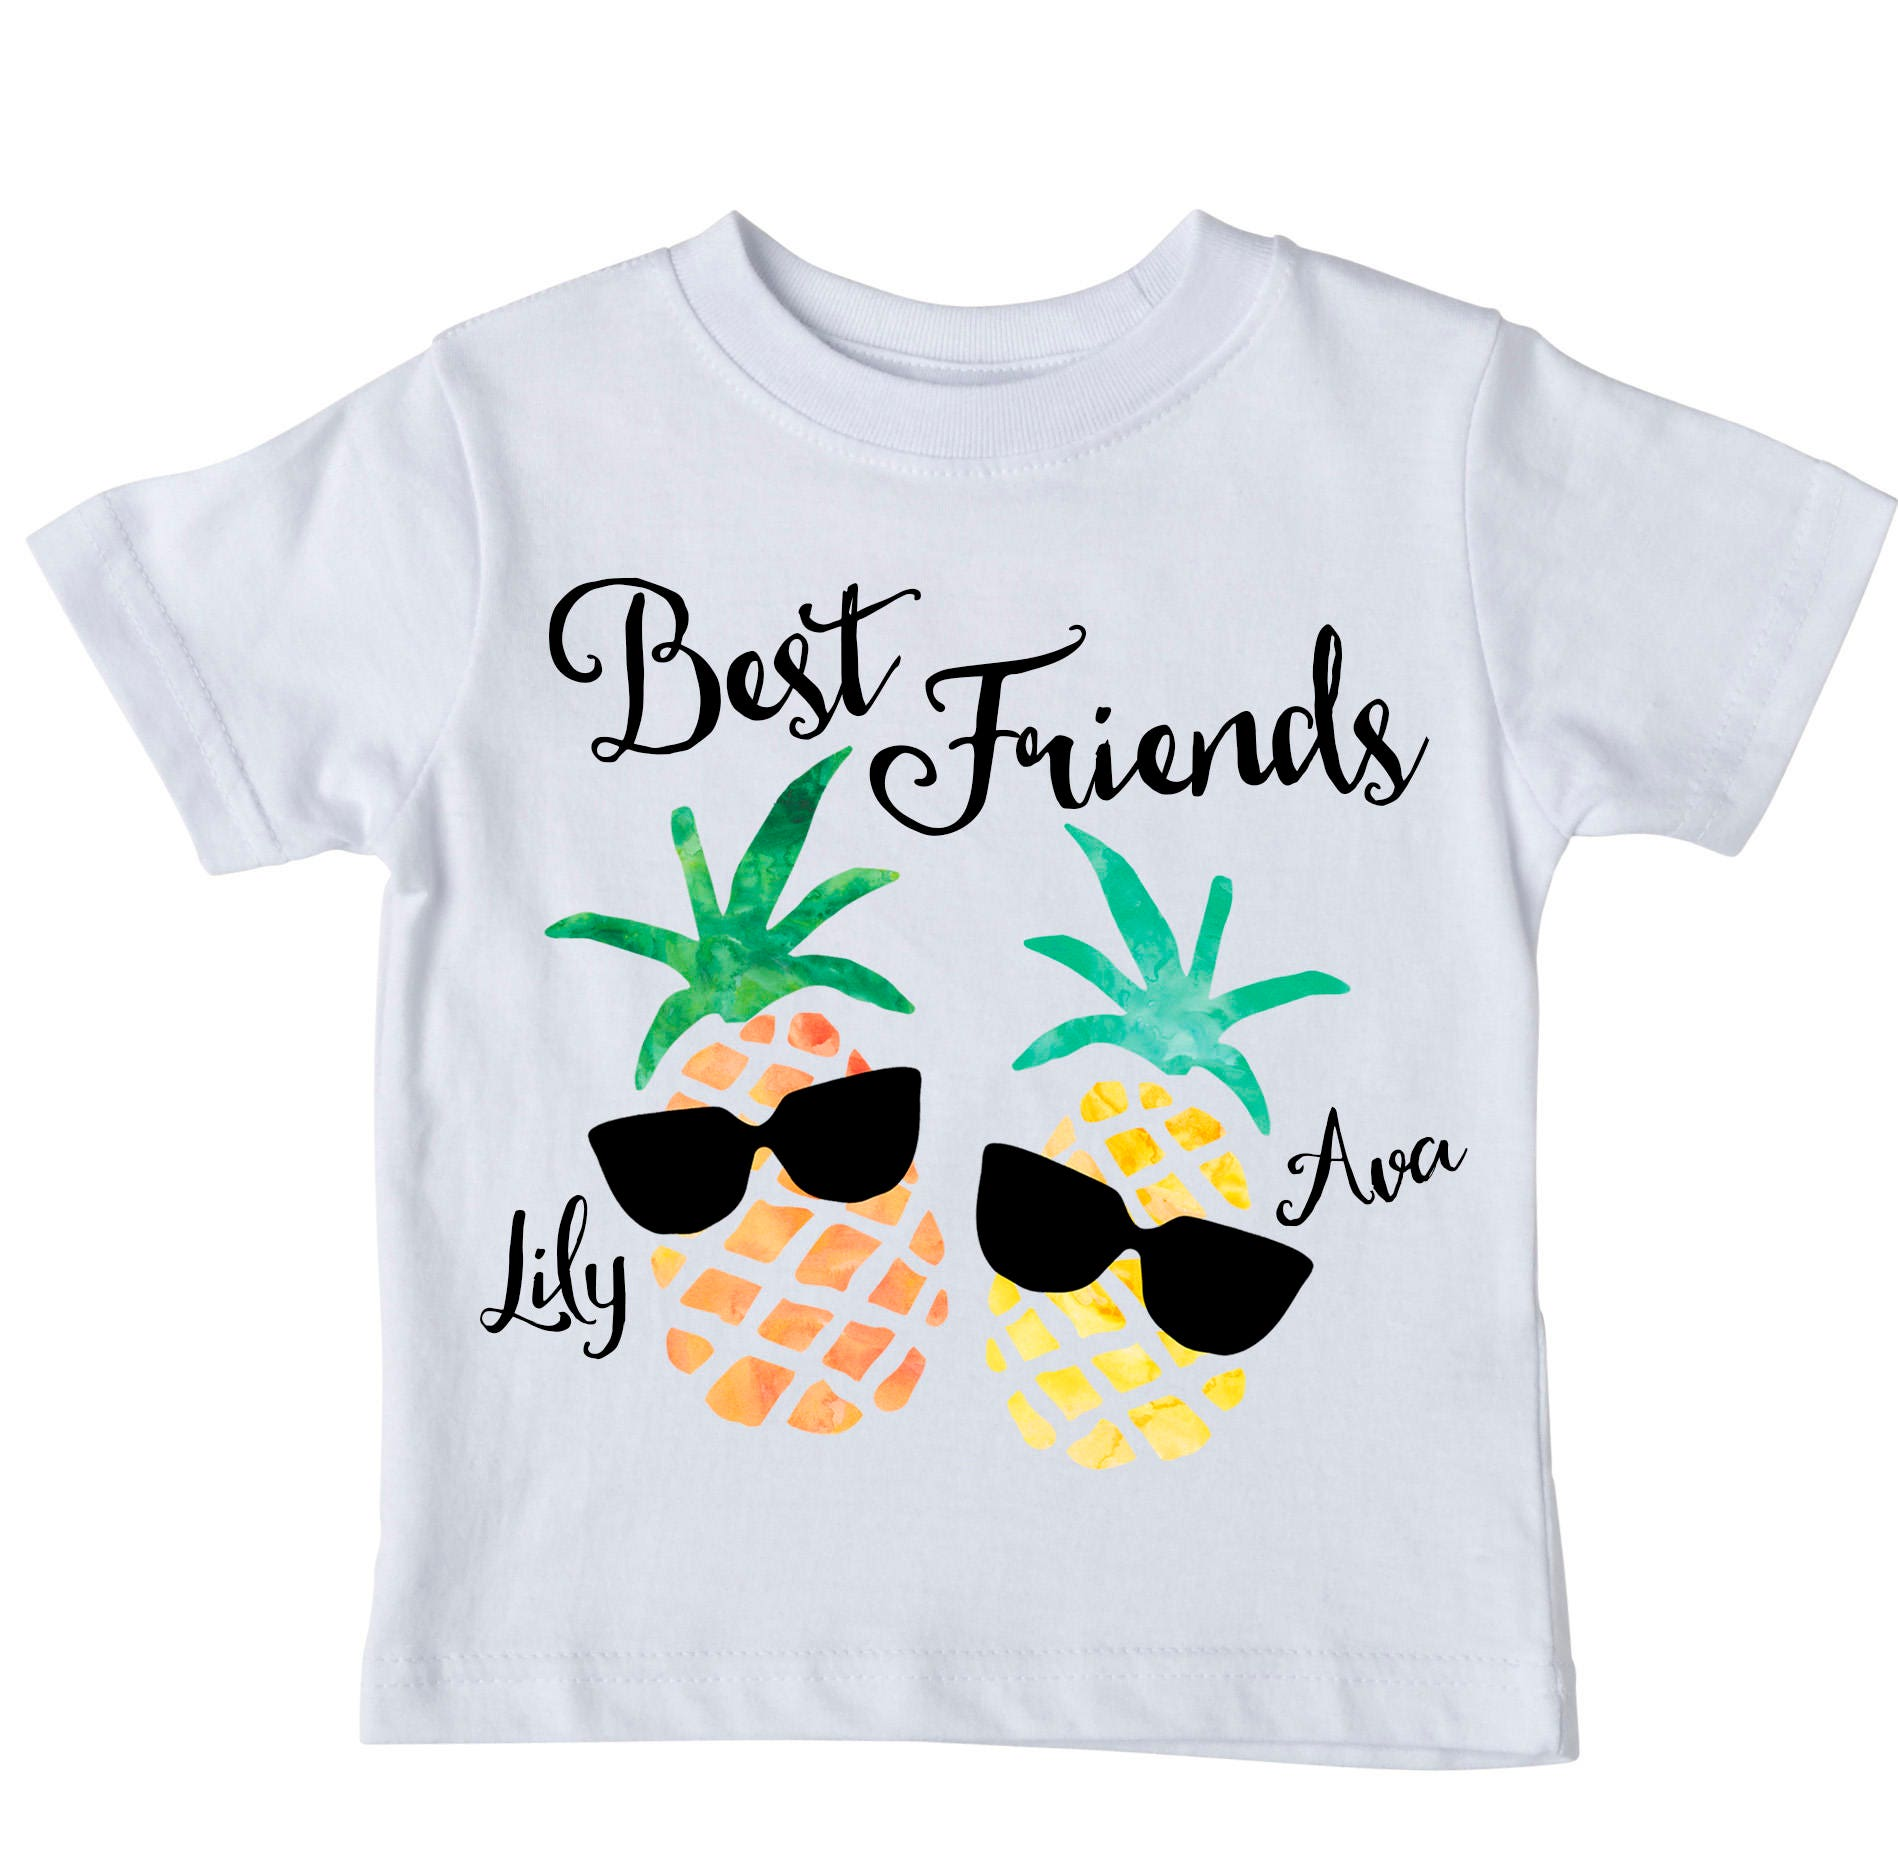 Best friends shirt set personalized shirt pineapple shirt for Custom personal trainer shirts